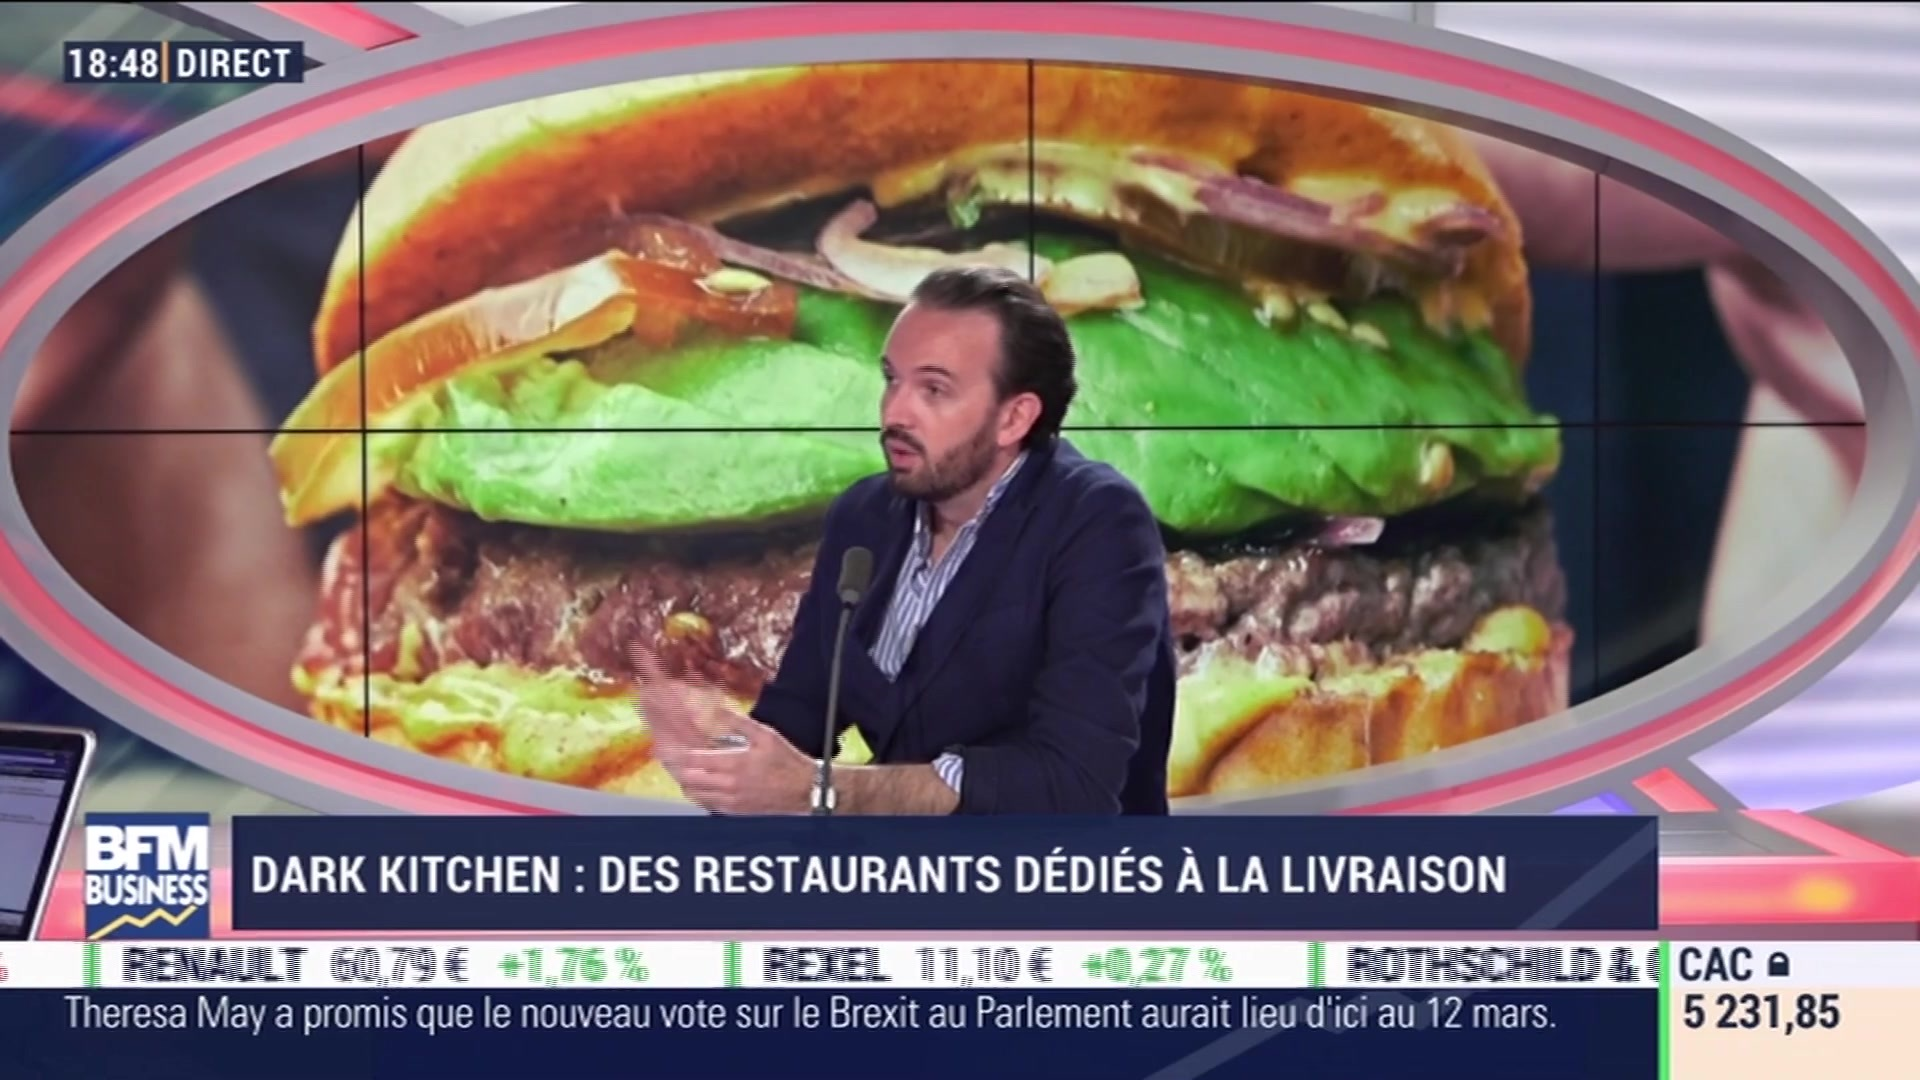 Dark Kitchen: des restaurants dédiés à